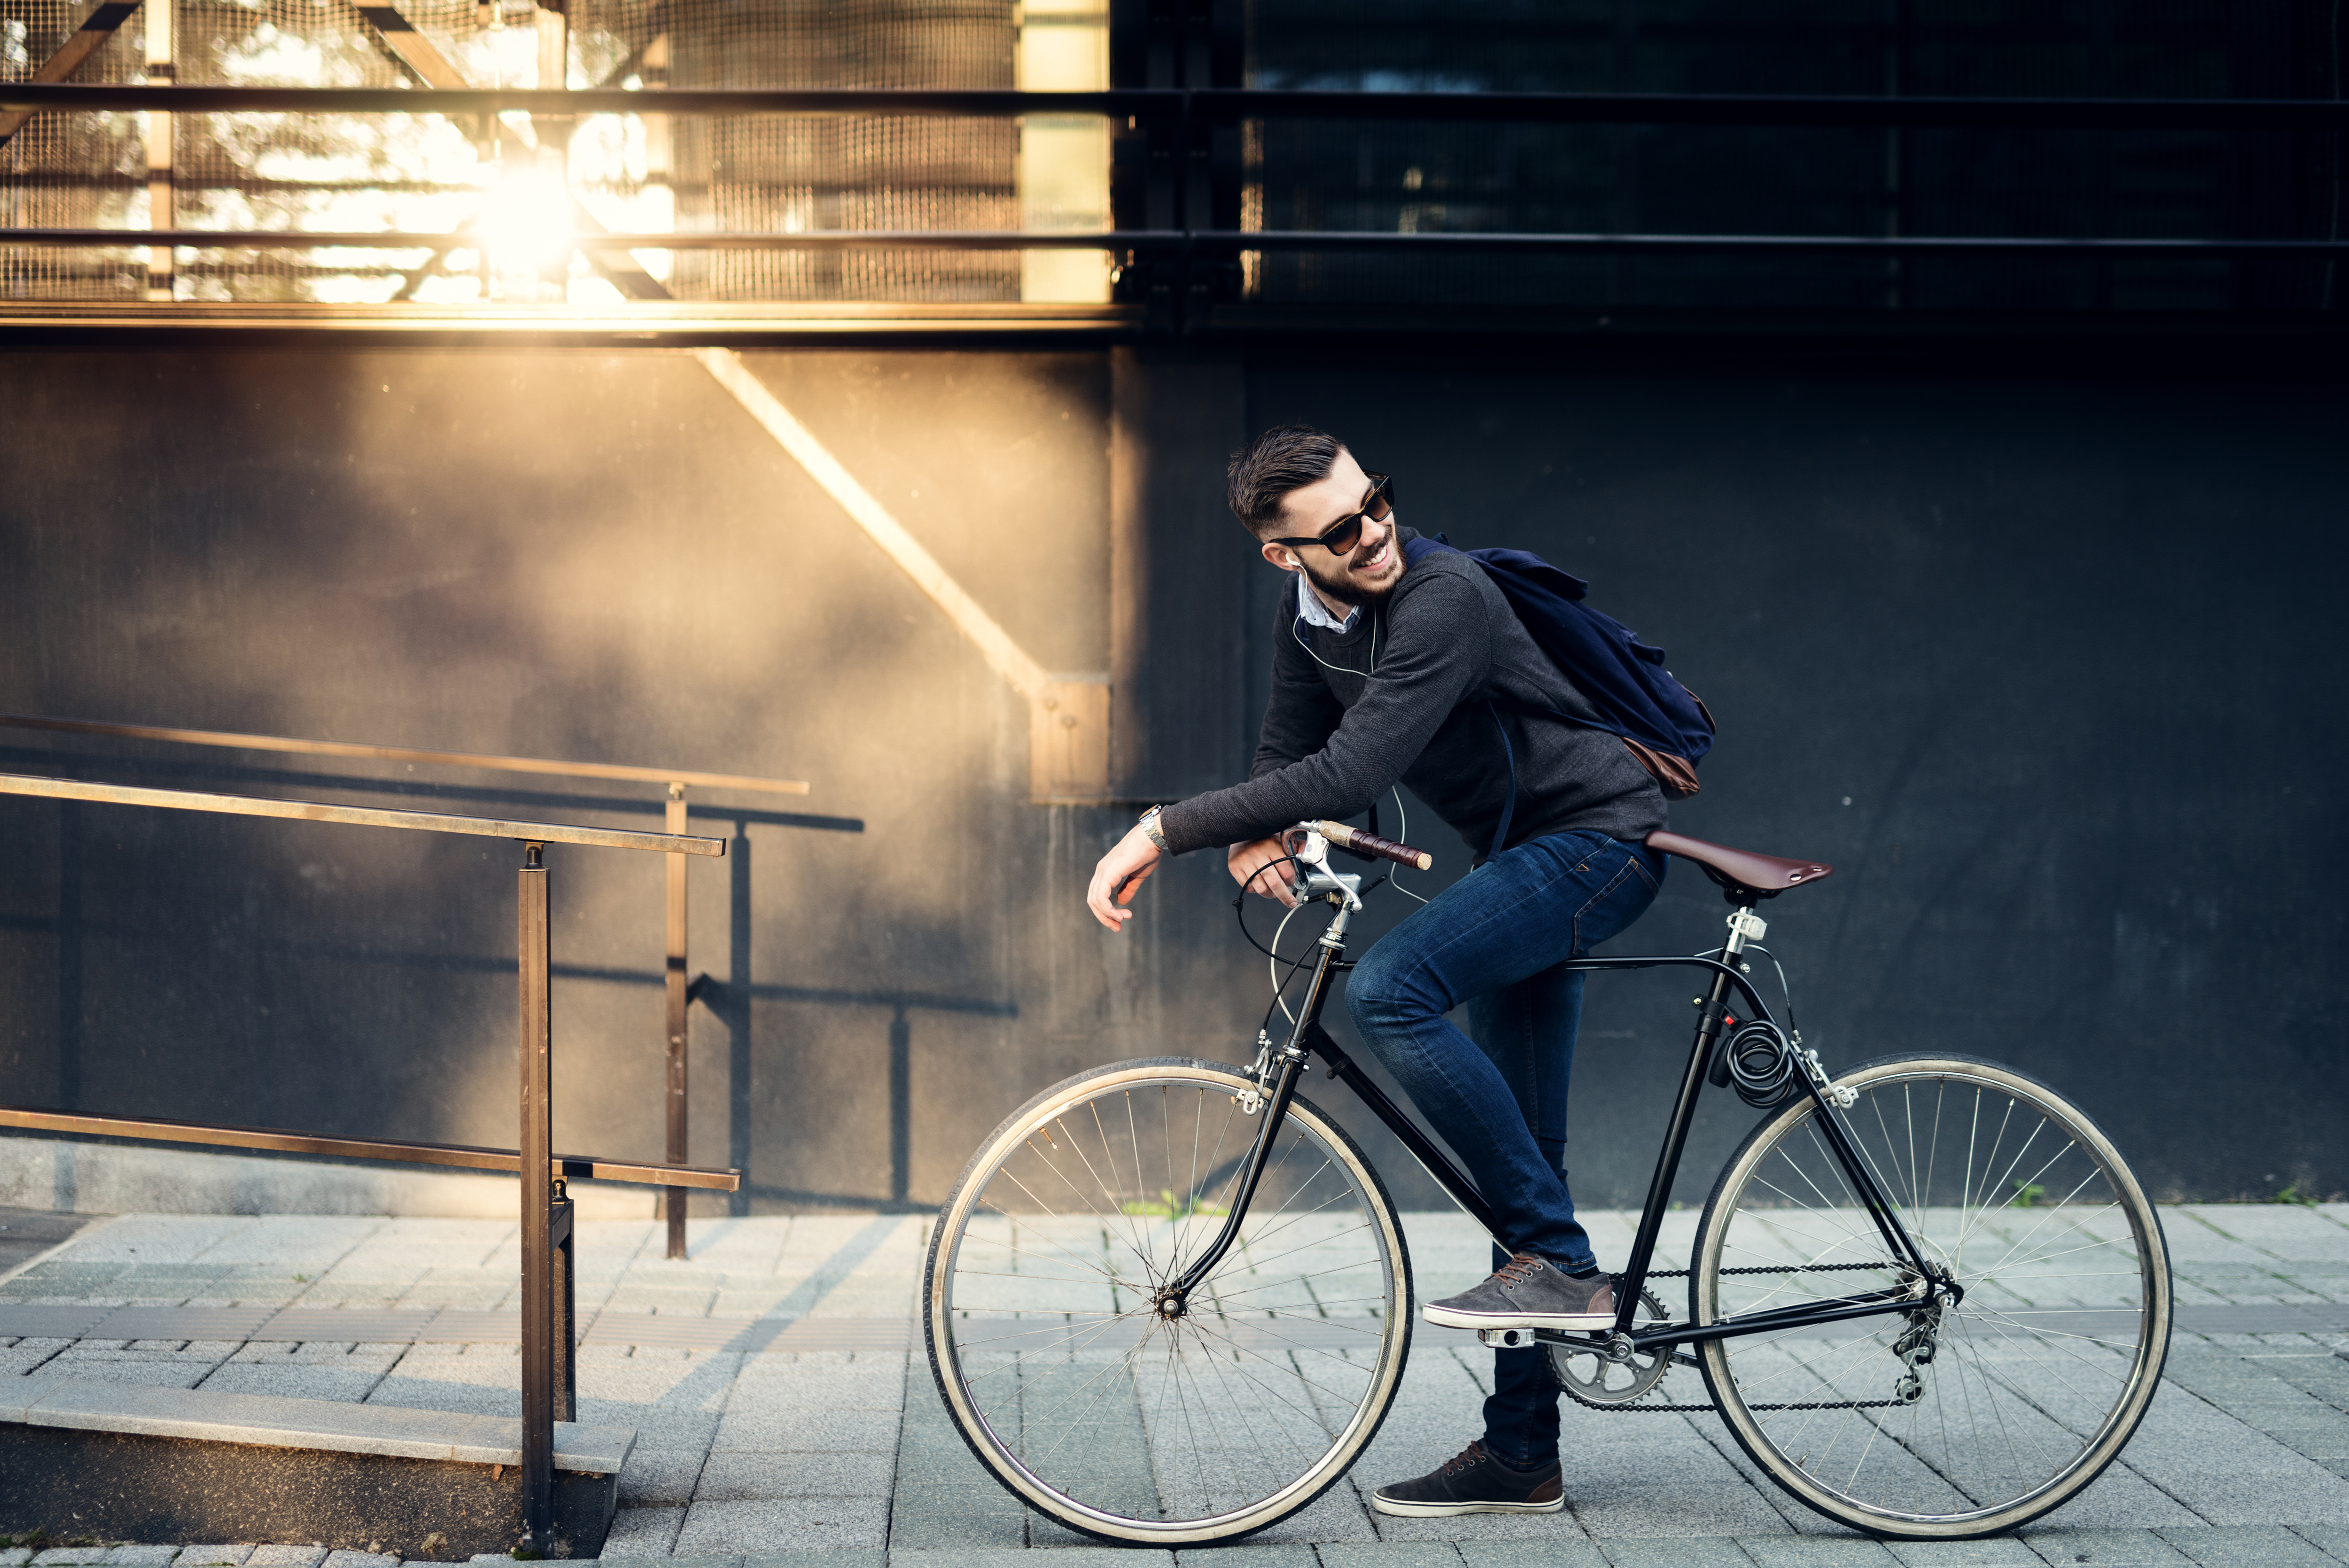 Male Bicycle Model on a Road Bicycle